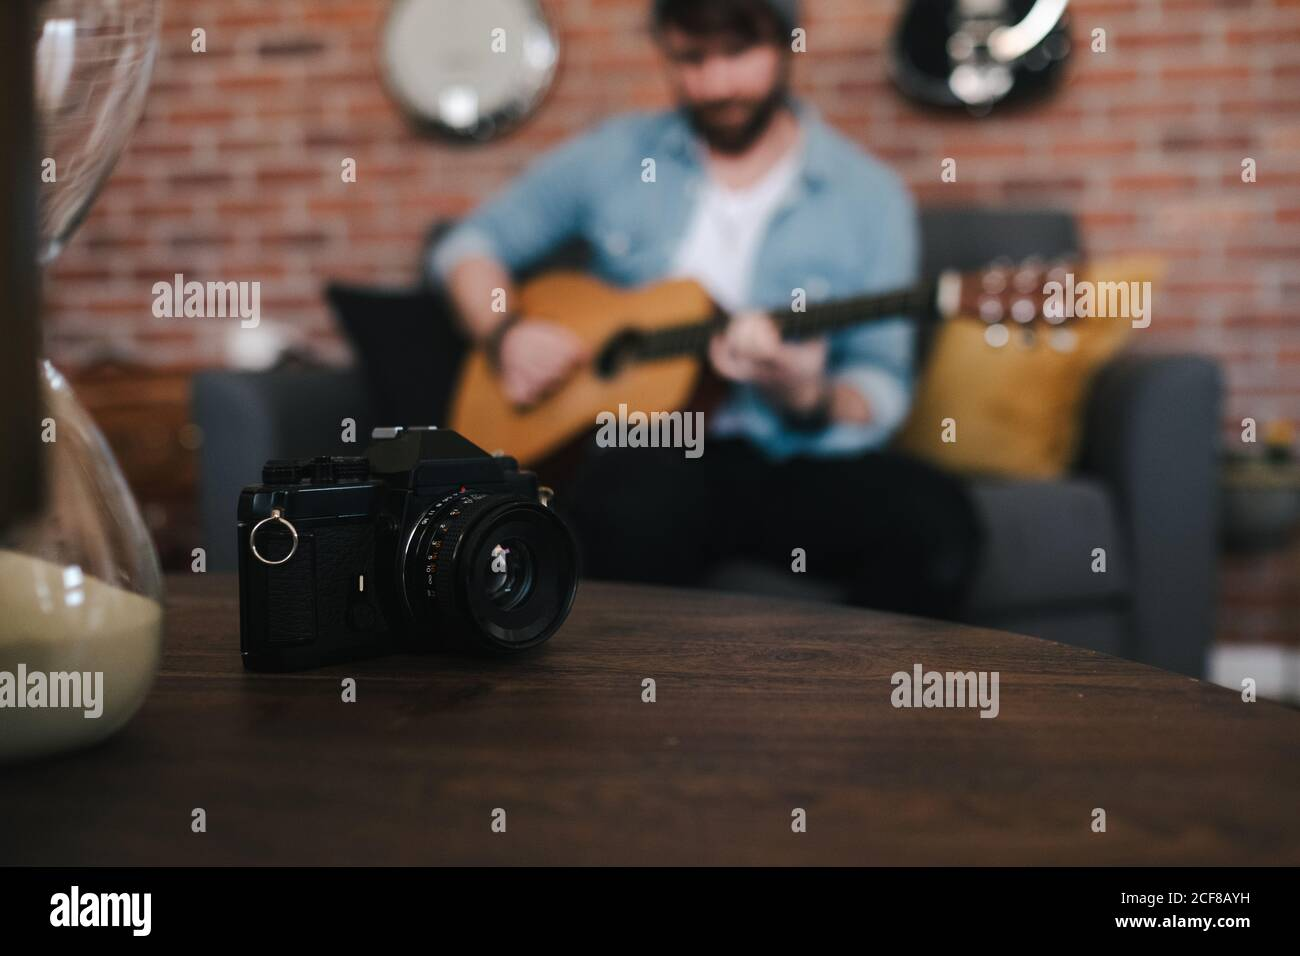 Crop bearded guy in denim jacket playing acoustic guitar while sitting on cozy couch in front of wooden table with photo camera and hourglass at home Stock Photo